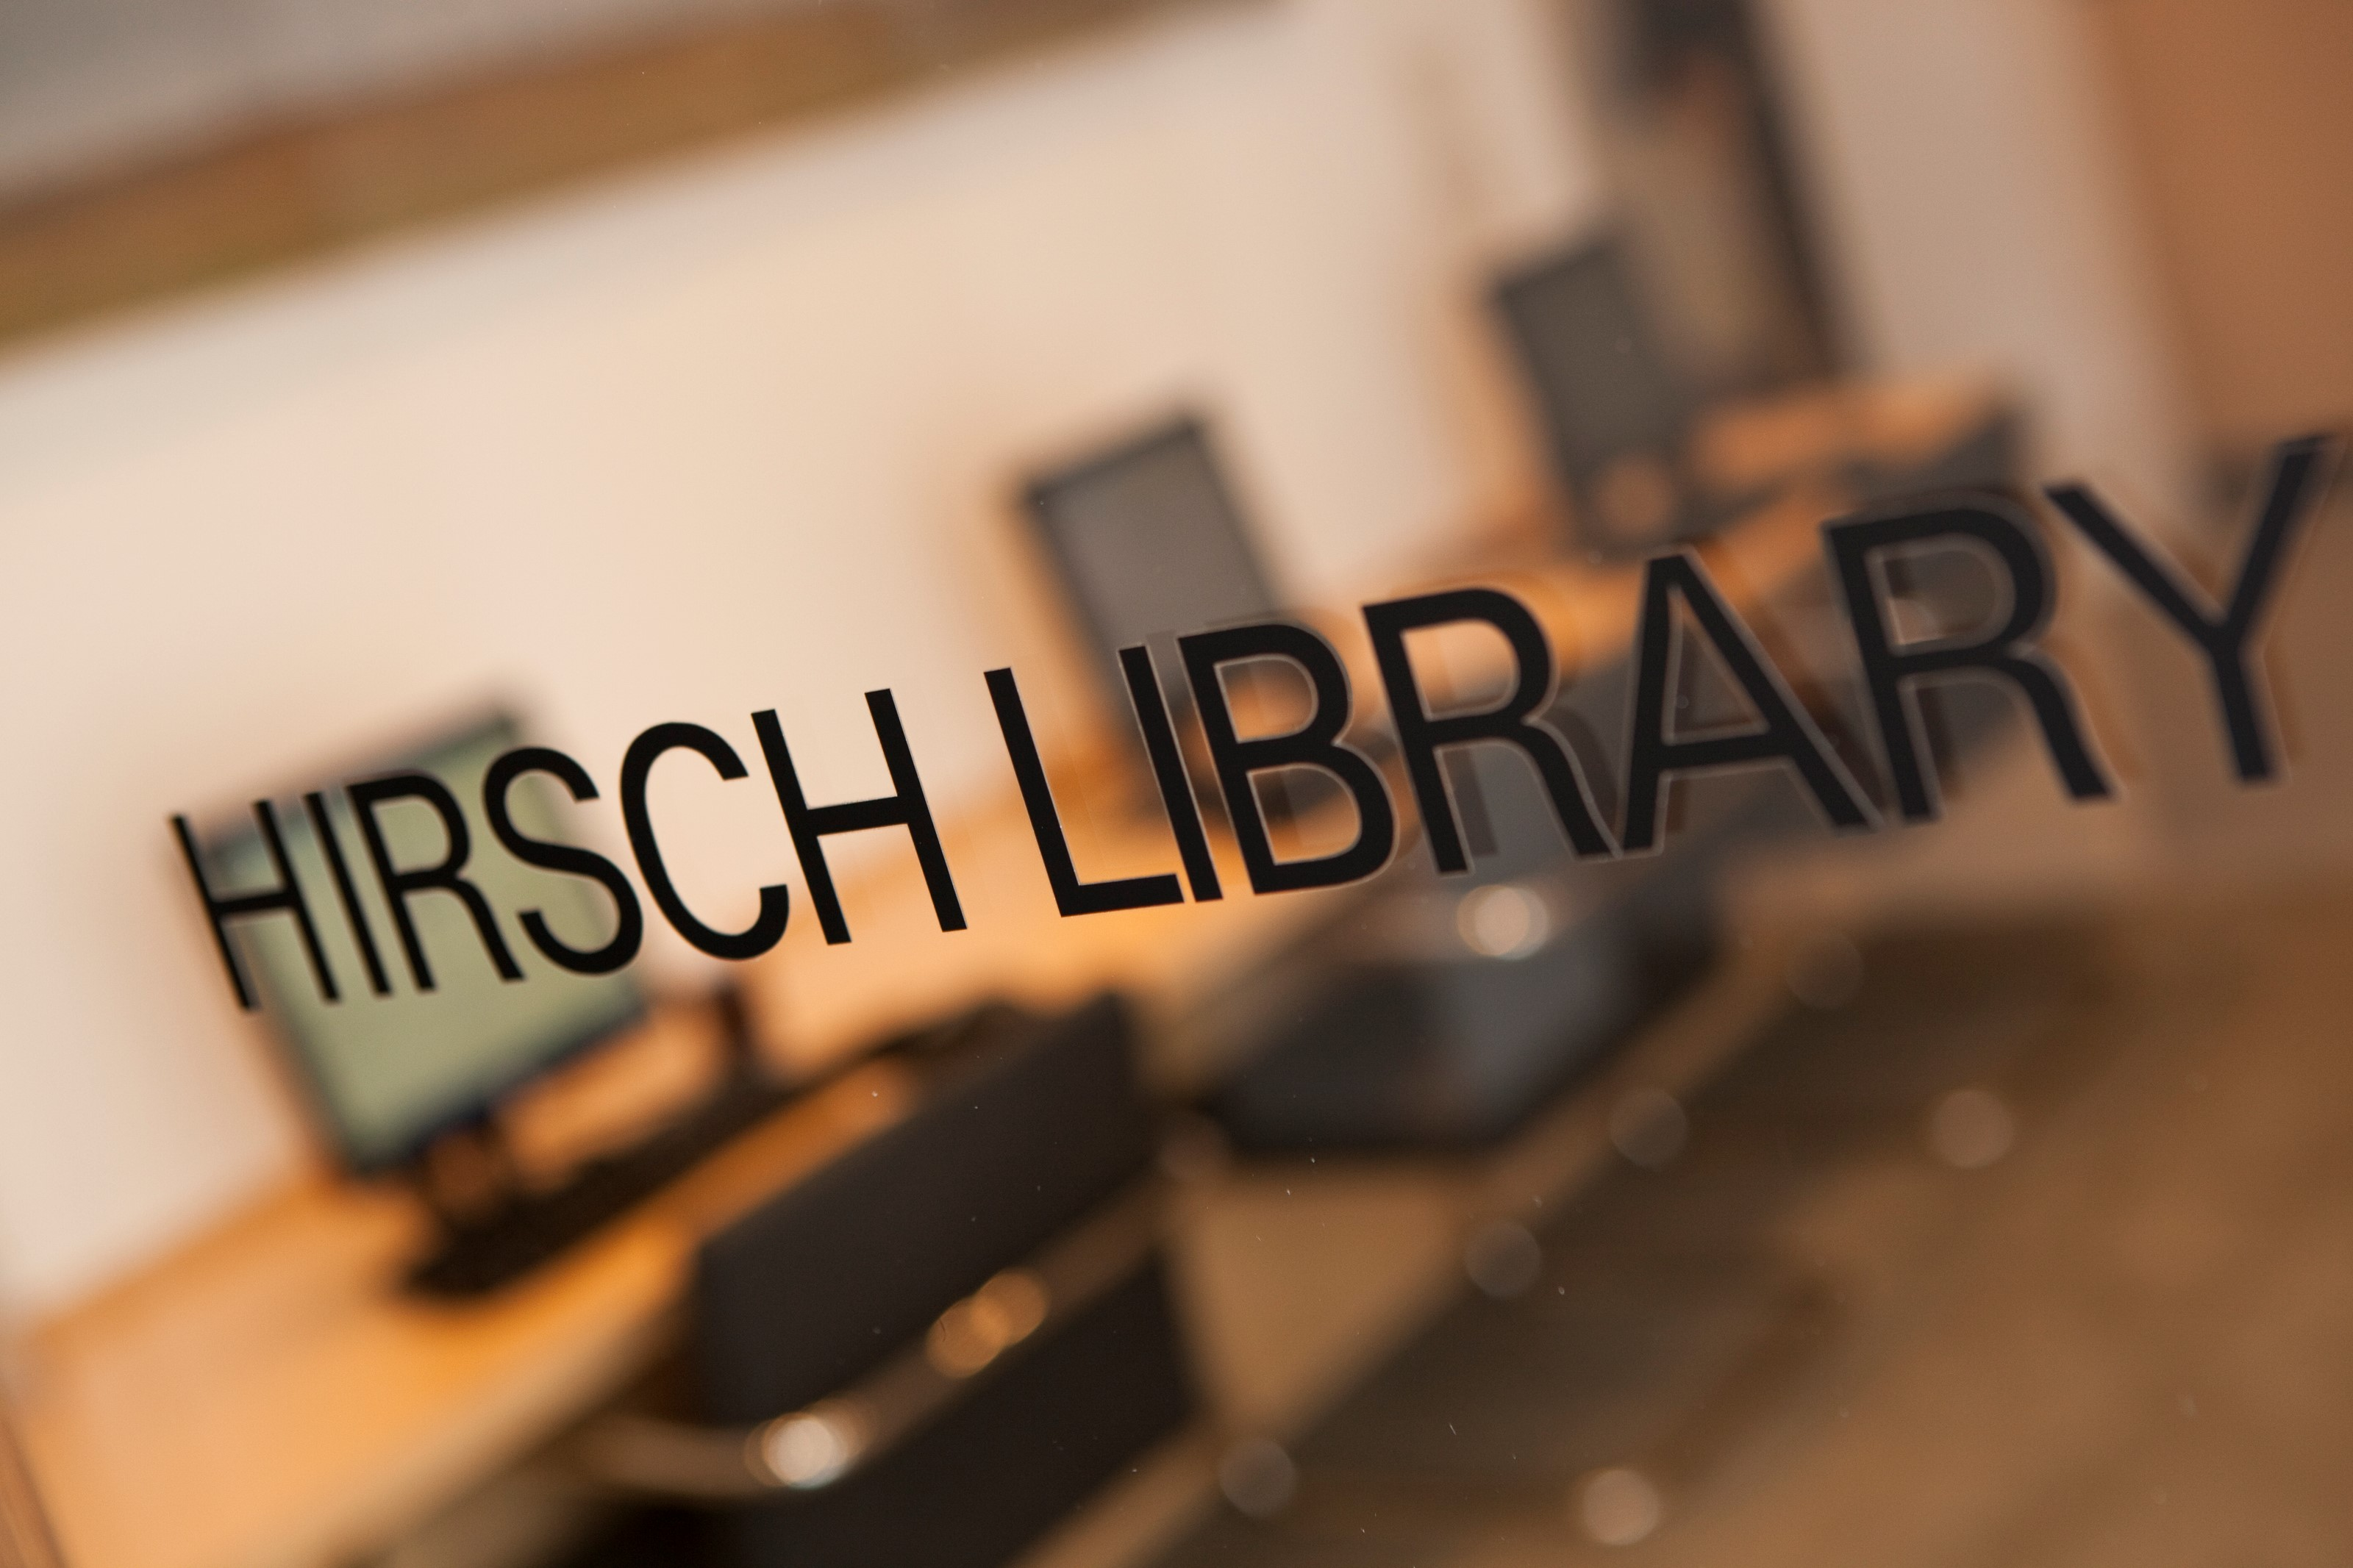 The Hirsch Library lettering glass door